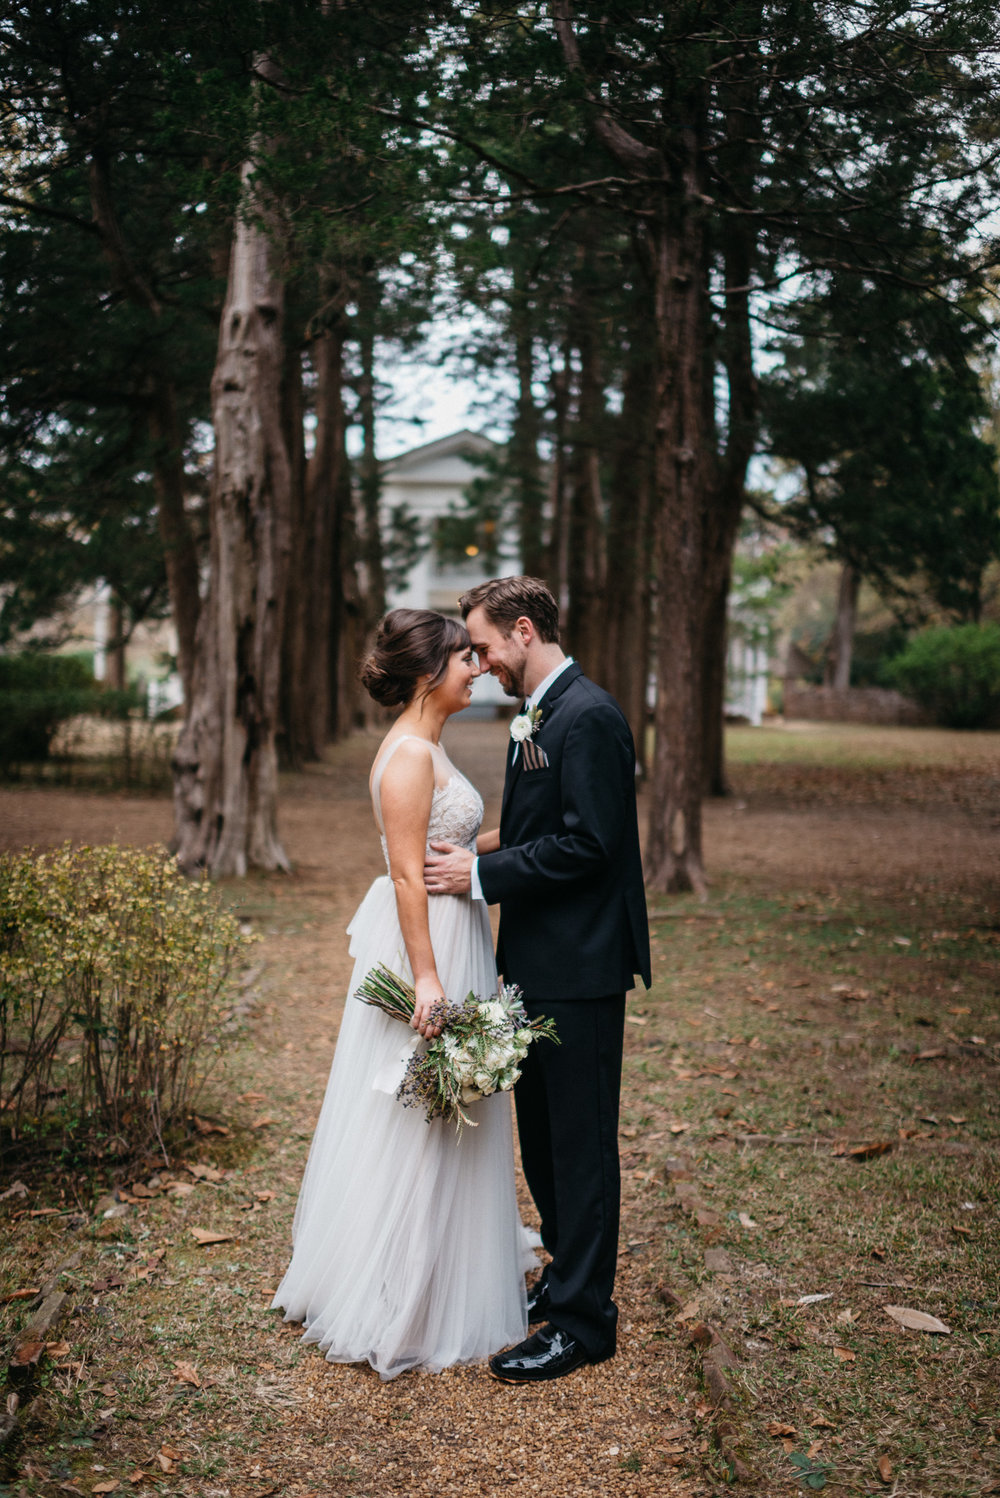 Elopement photography on the grounds at Rowan Oak, Faulkner's home